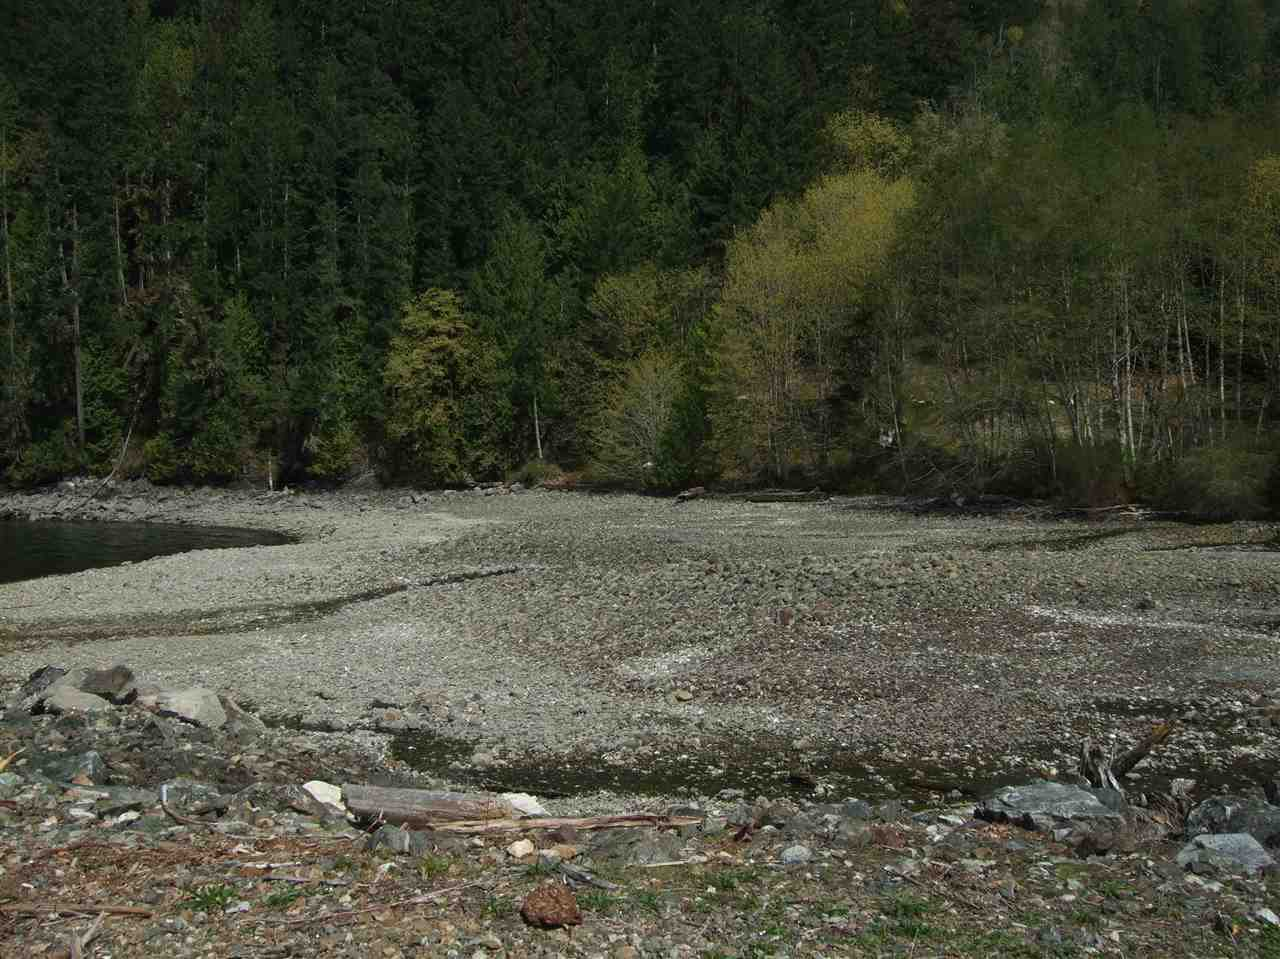 Photo 4: Photos: DL 5658 KILLAM BAY in Egmont: Pender Harbour Egmont Land for sale (Sunshine Coast)  : MLS®# R2402613